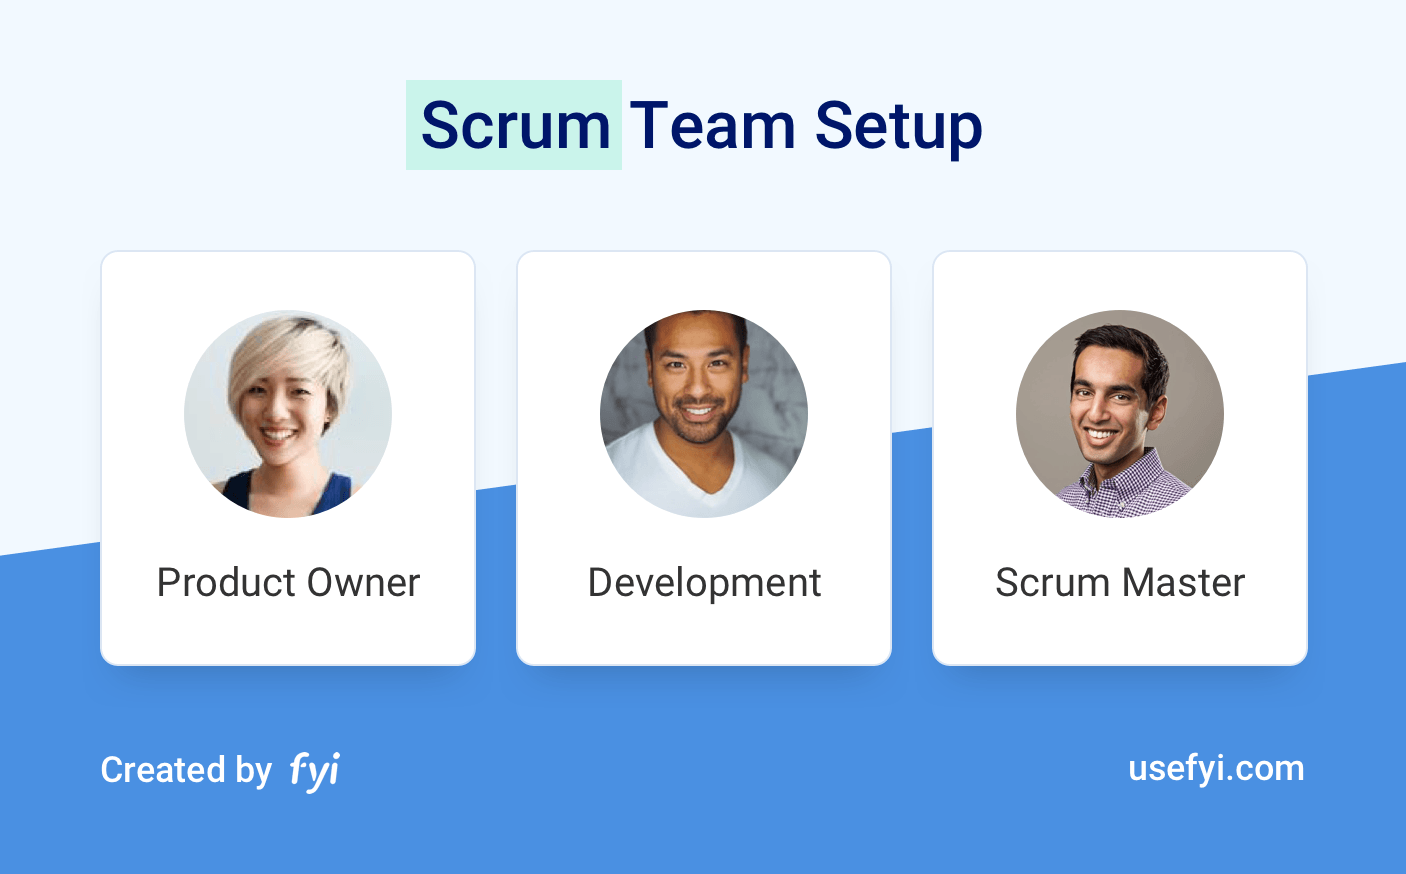 The Scrum Team